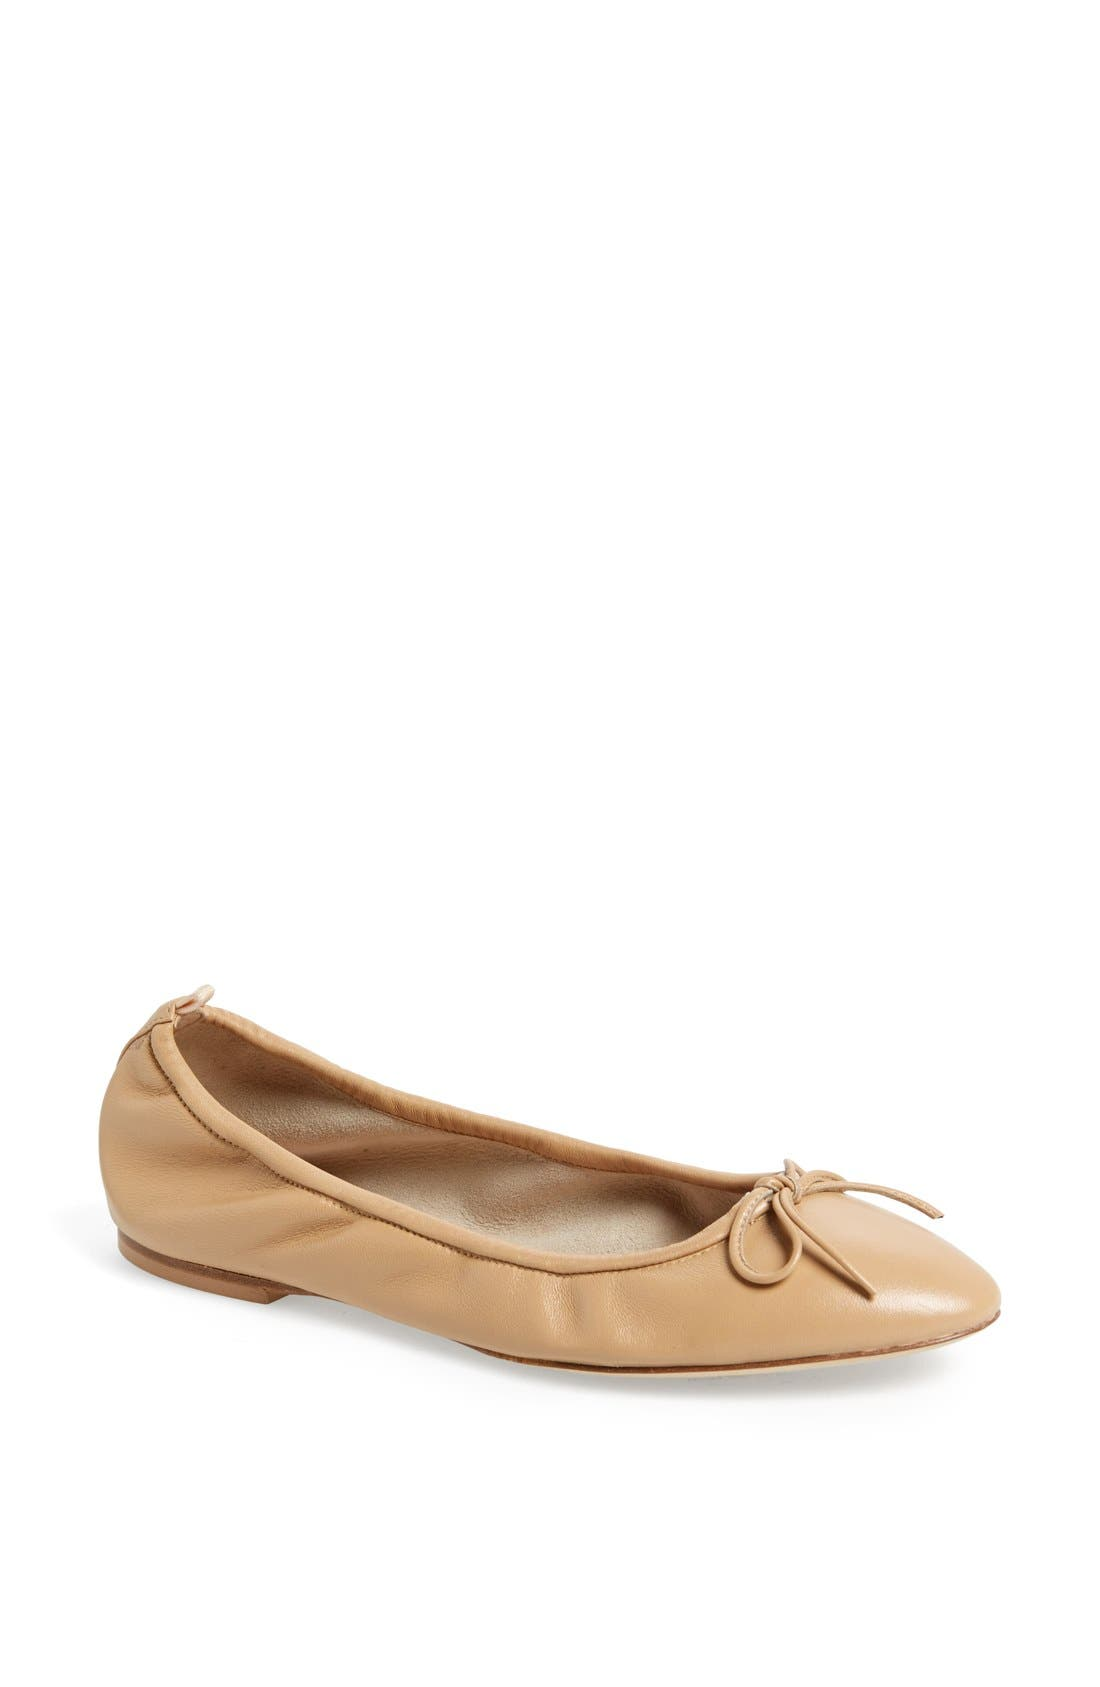 by Sarah Jessica Parker 'Gelsey' Nappa Leather Skimmer Flat, ...